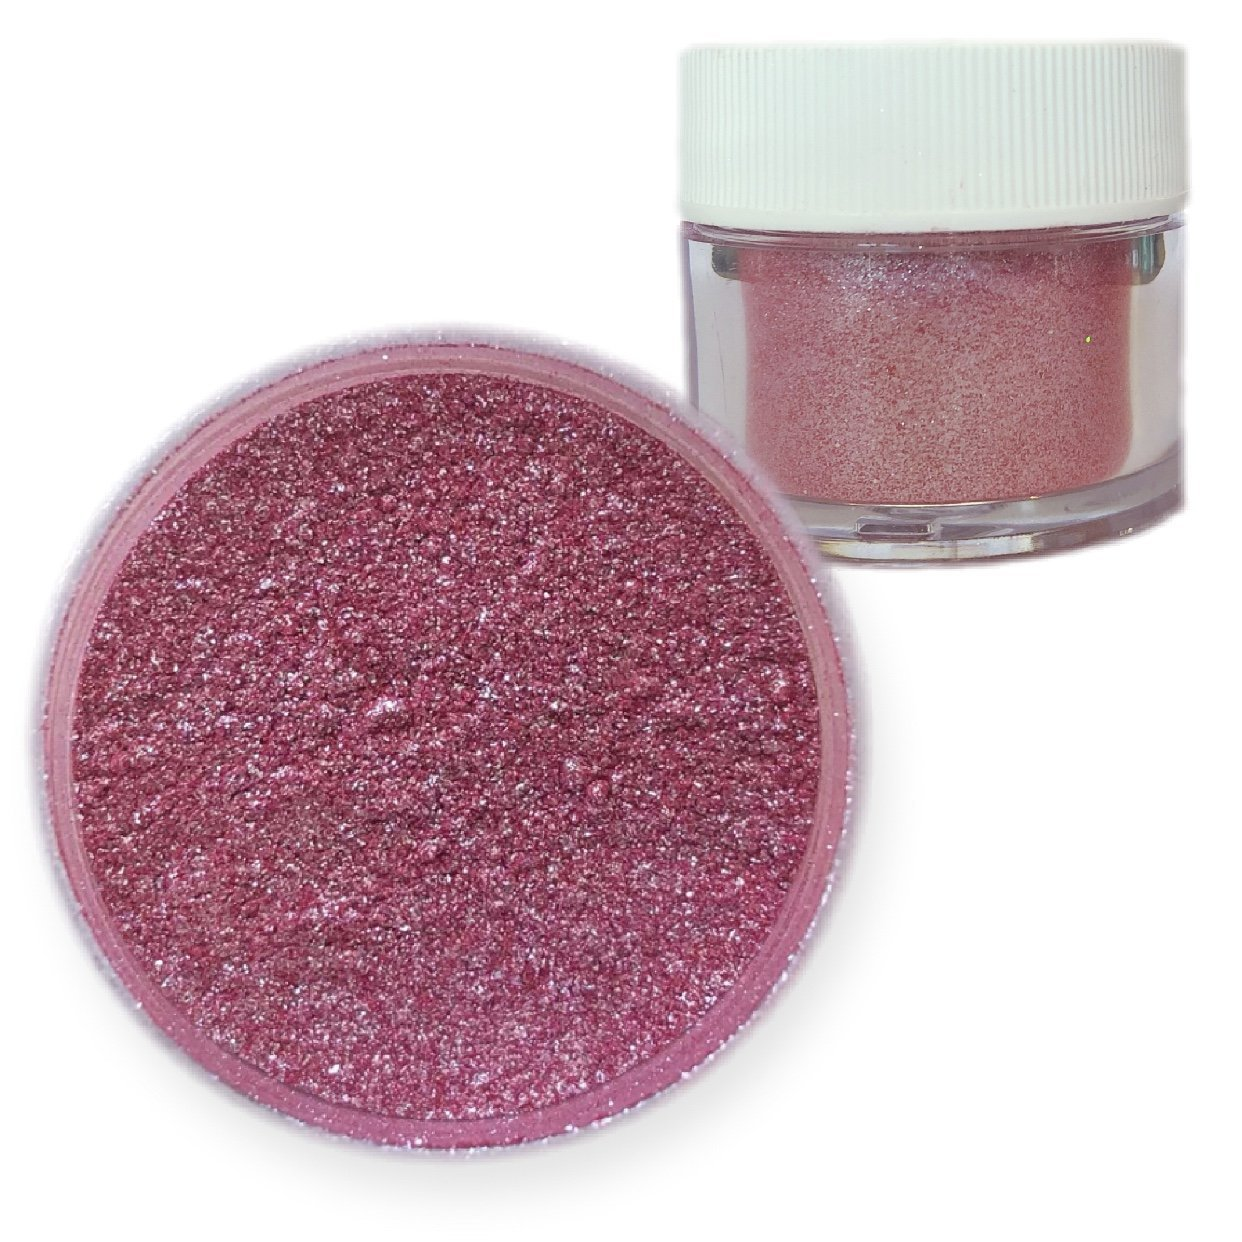 Bakell Rosé Wine Red Edible Luster Fine Grain Pearlized Sparkle Food Grade Lustre Dust 4g